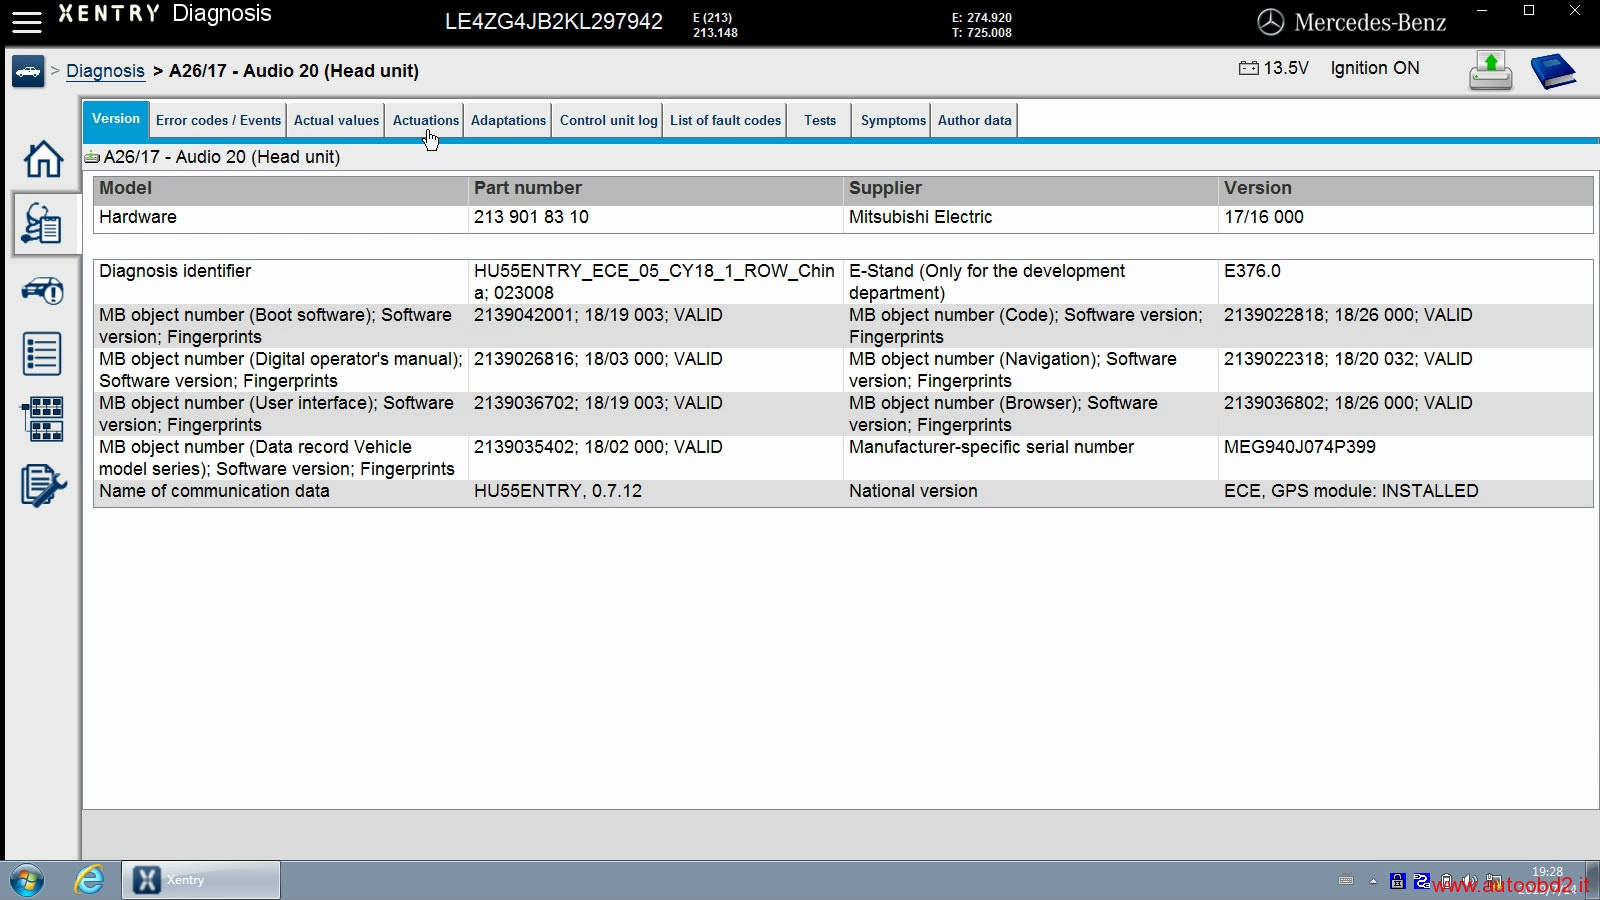 sdc4-plus-xentry-test-actuation-of-function-ethernet-communication-doip-12